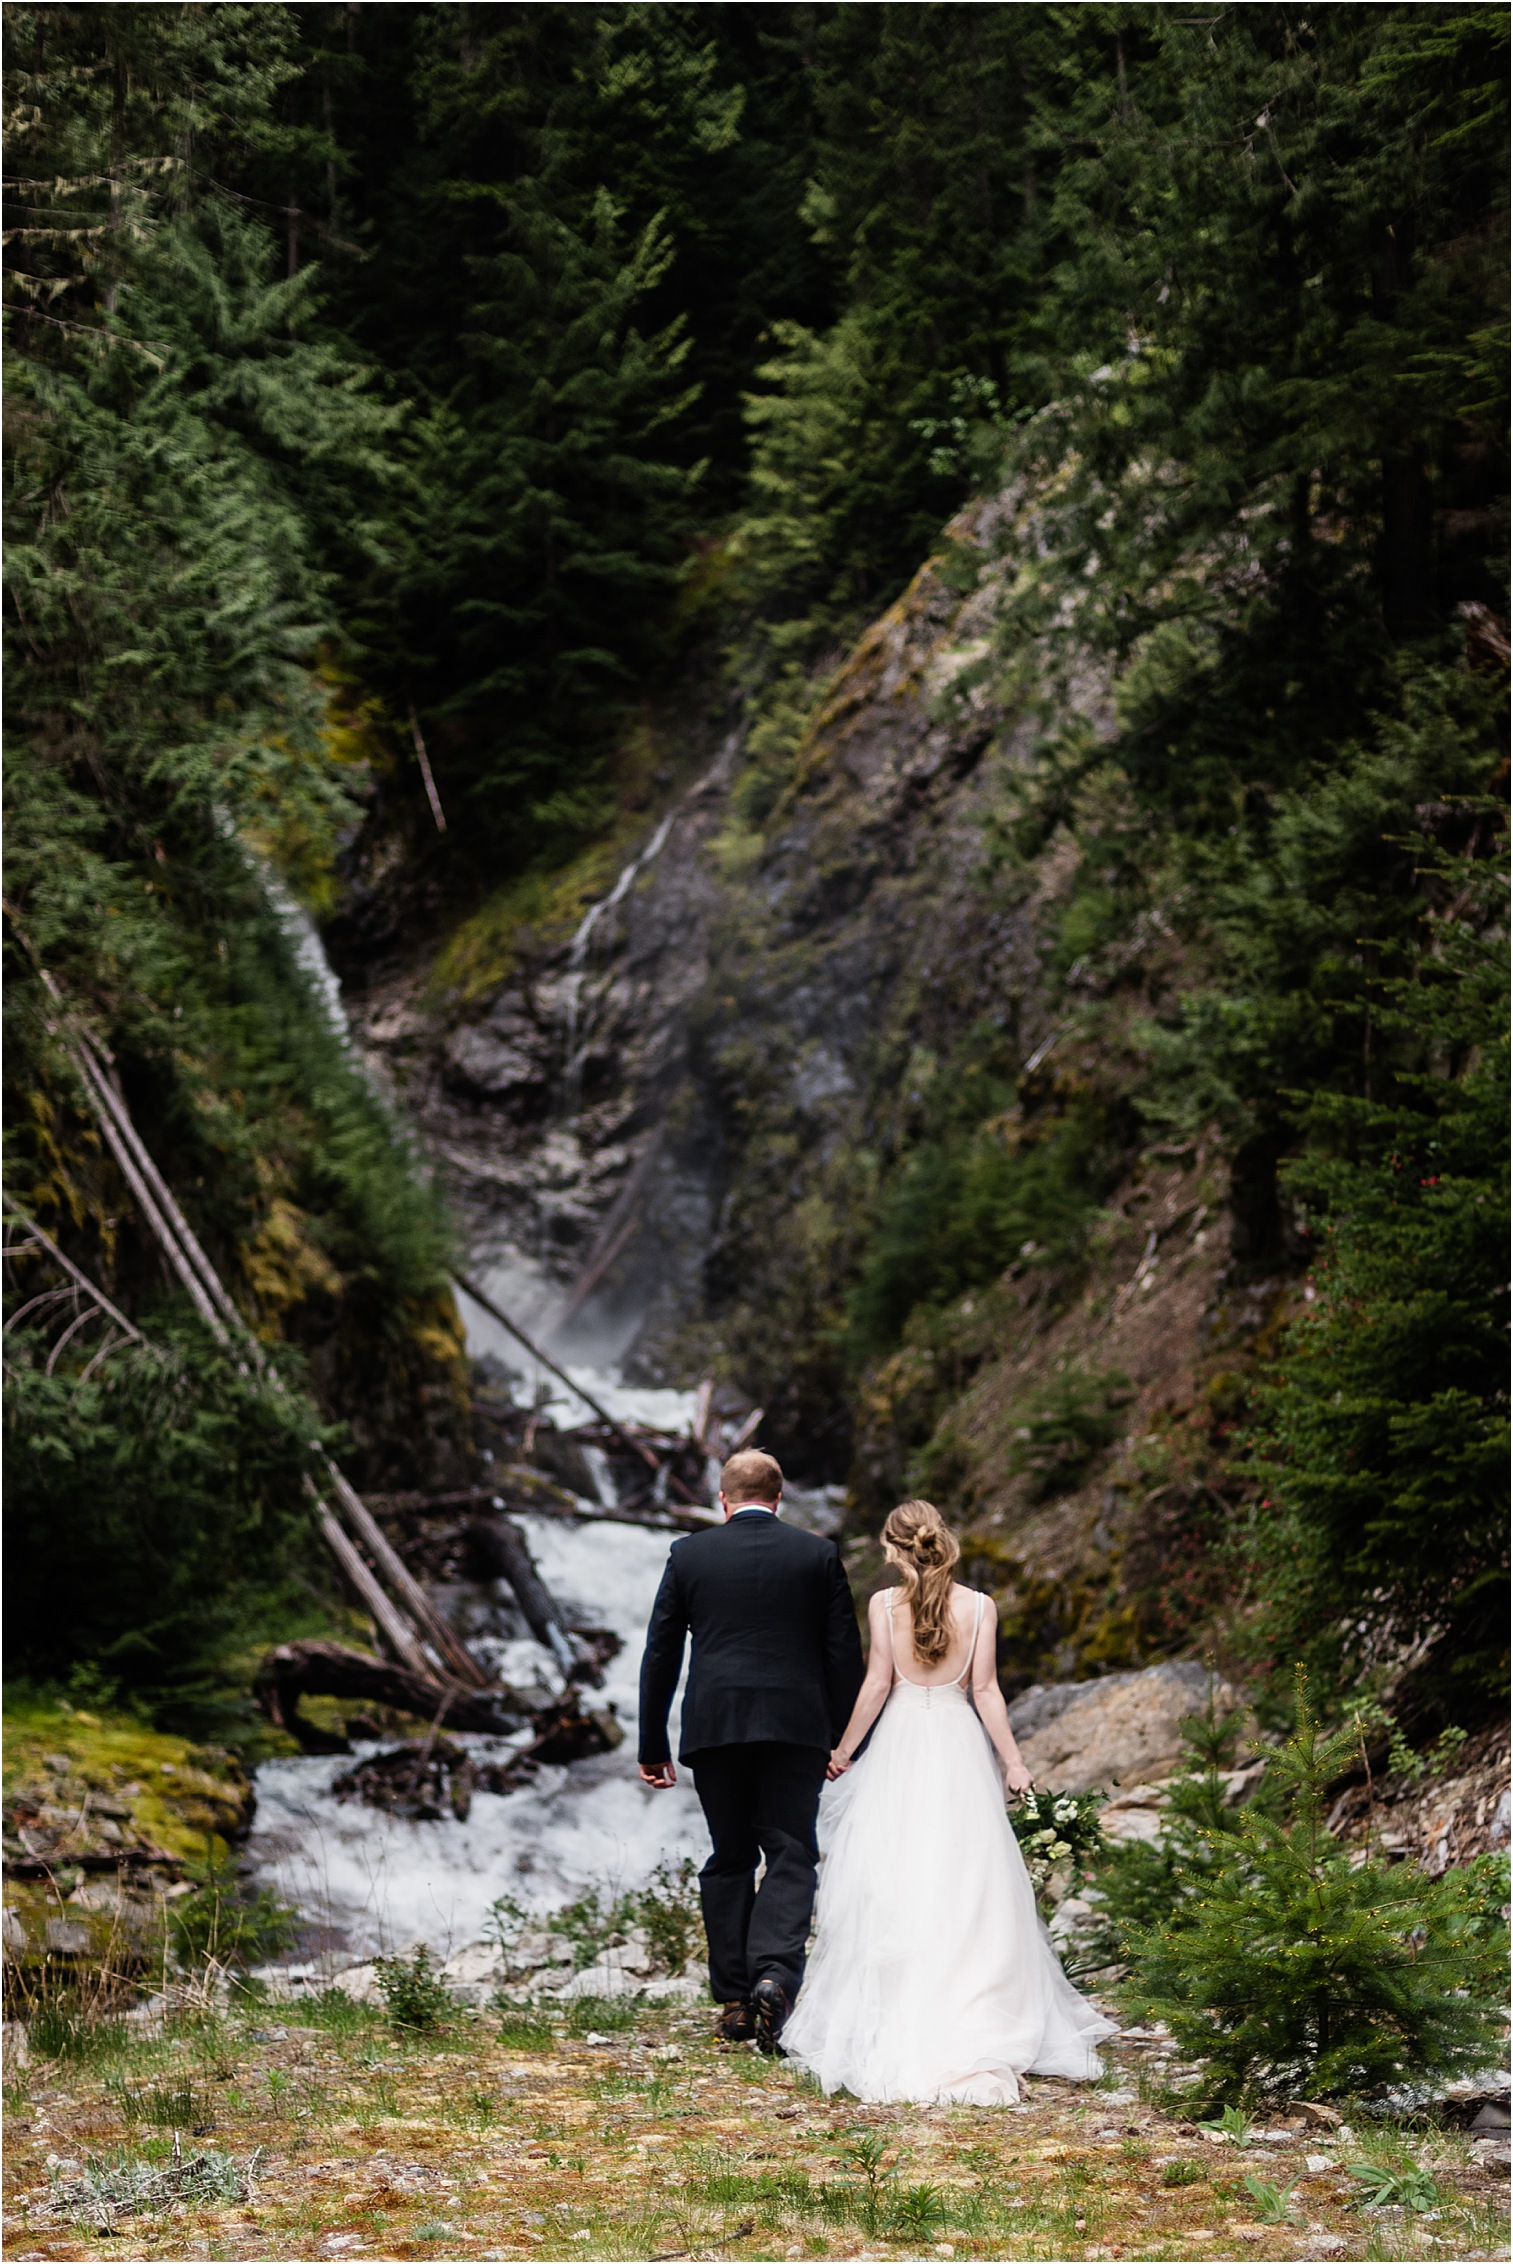 Hope & Steven at a roadside waterfall during their Adventure Wedding in the North Cascades. Image by Forthright Photo, Seattle Wedding & Elopement Photographers